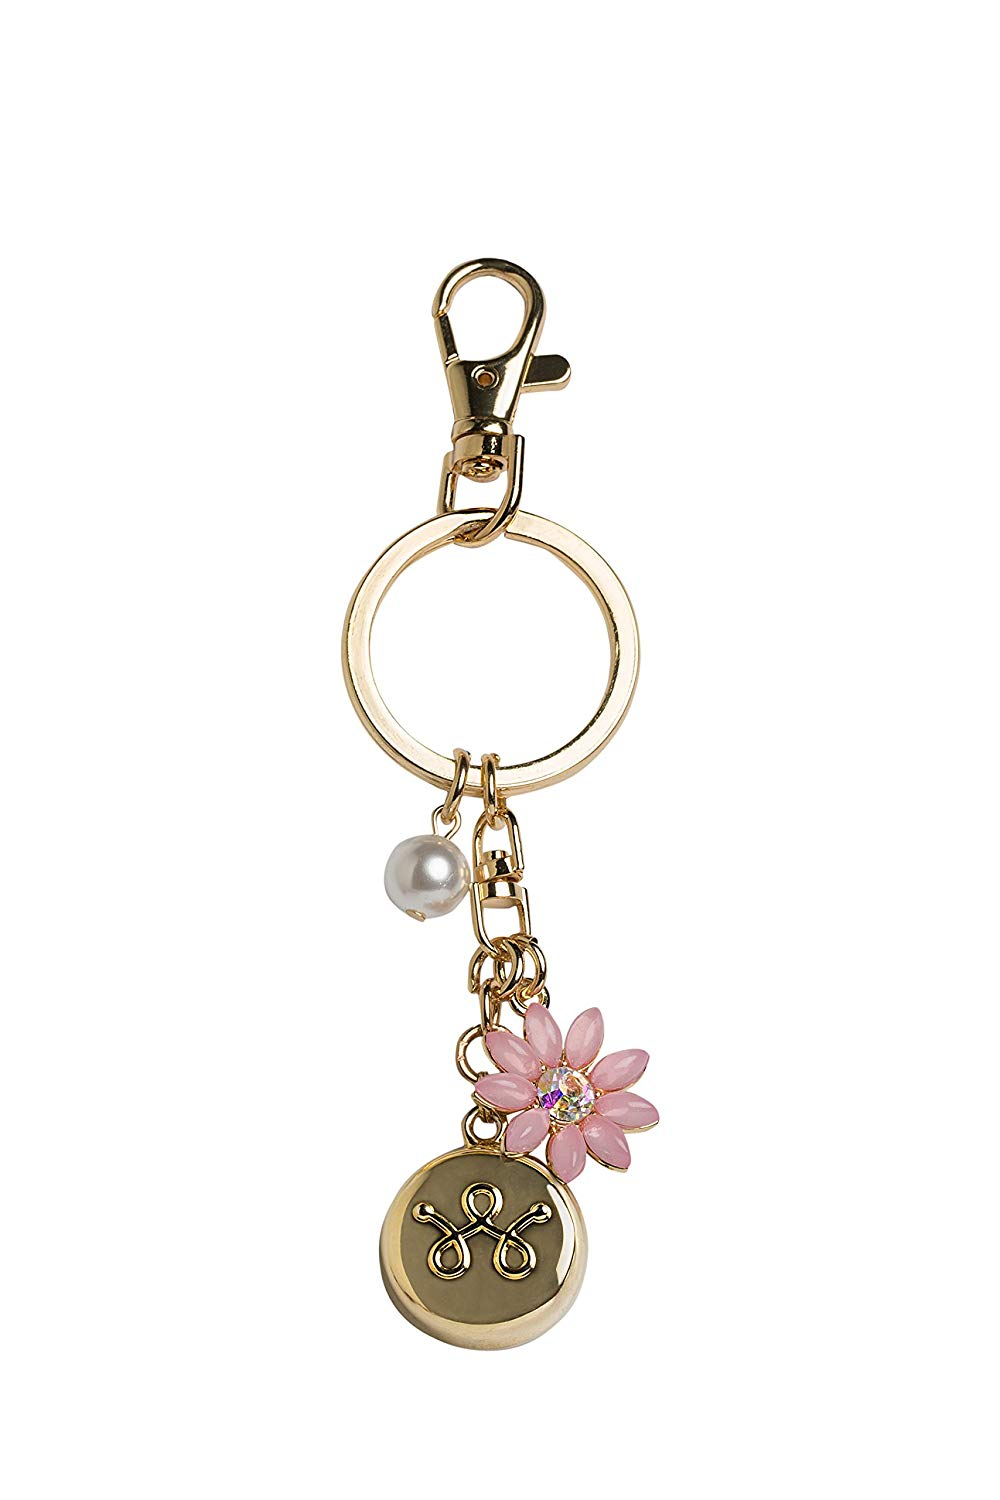 Gold Flower Keychain Personal Safety Device 12